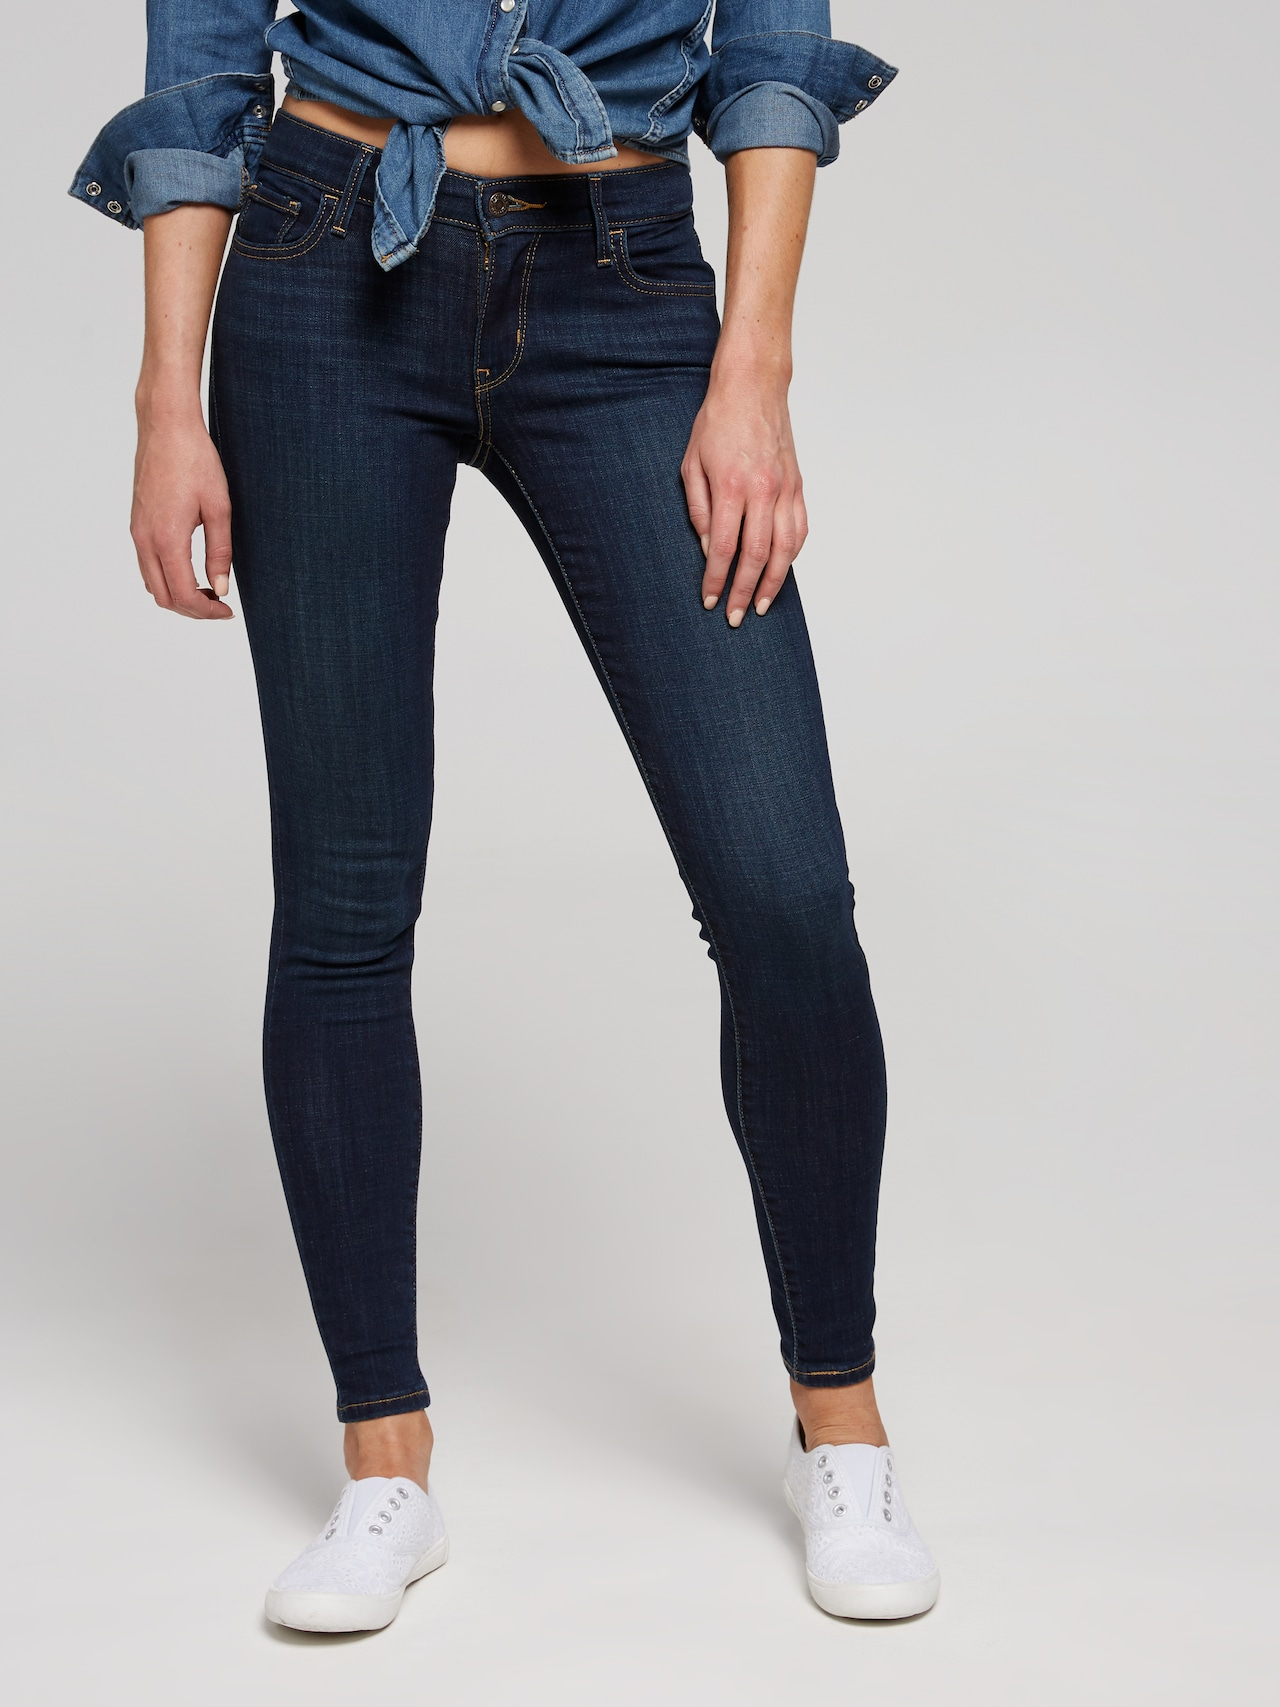 new arrival official store factory outlet Just Jeans LEVI'S 710 SUPER SKINNY JEAN IN EVOLUTION